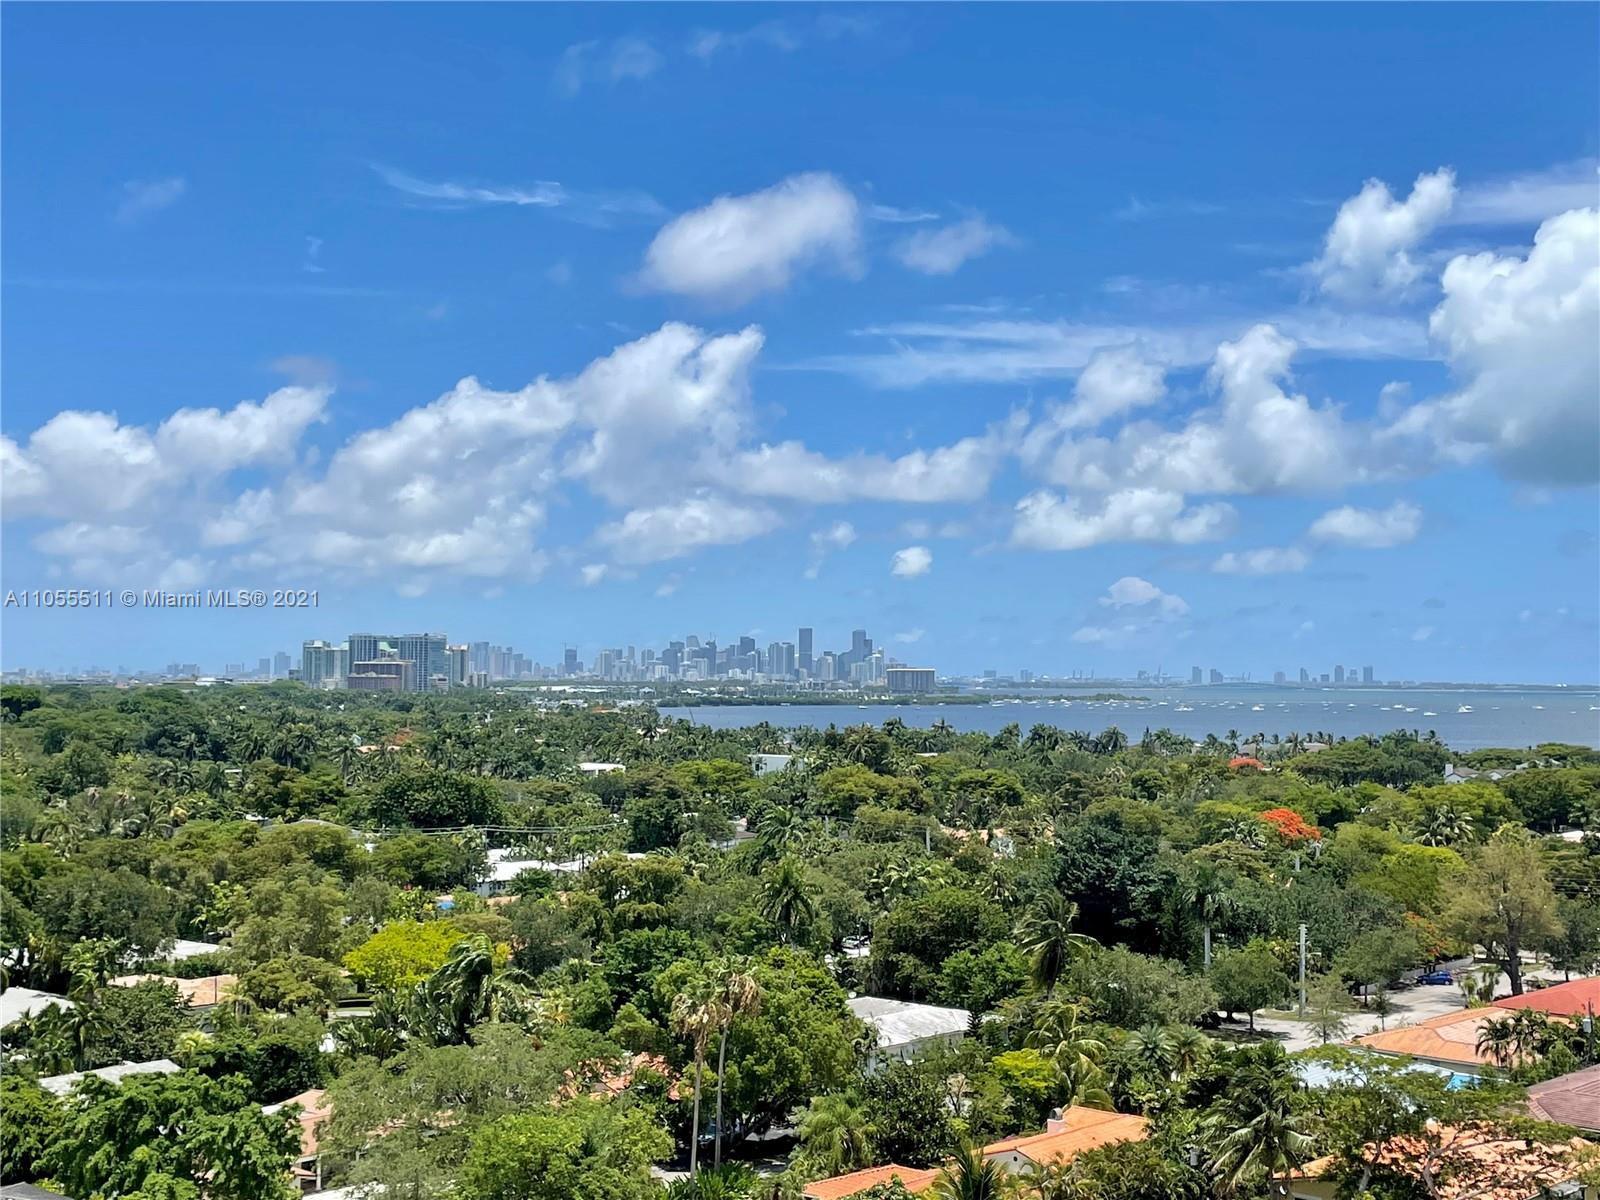 A rare opportunity! 1 of 4 Corner Penthouse units at Gables Waterway Towers. Located on the 13th floor featuring 2 beds / 2.5 baths with 10ft ceilings. 40 yr certification PASSED 4 months ago. Plans to renovate are approved by the City of Coral Gables. Boat docks can be bought & rented as they become available with no bridge to bay! Built in 1969. Only 13 floors in safe & secure prestigious Coral Gables Waterway. Washer/Dryer can be installed inside the apartment (has to be ventless). Easy to show, vacant! See broker remarks to set up appointments.